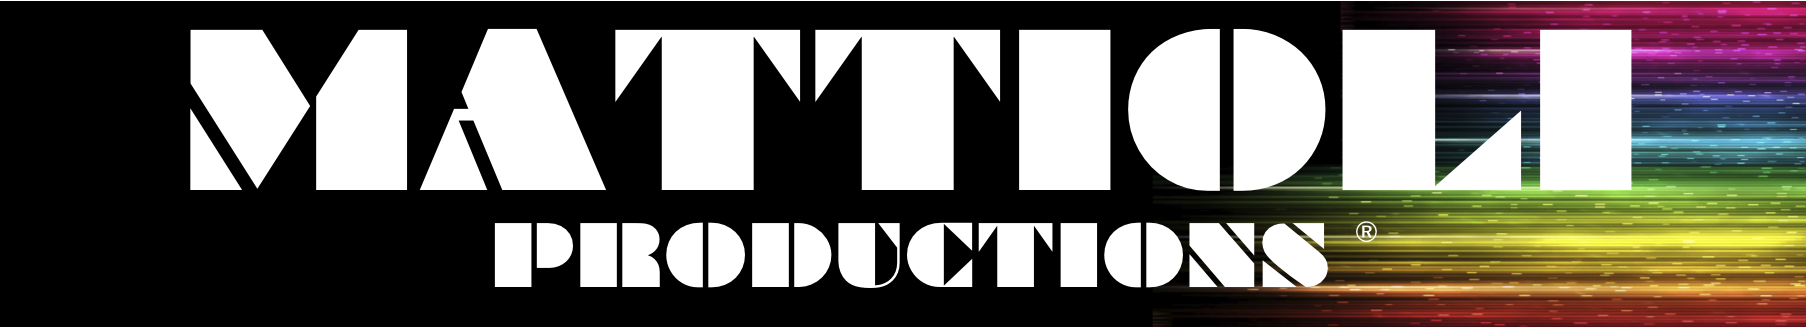 Mattioli Productions